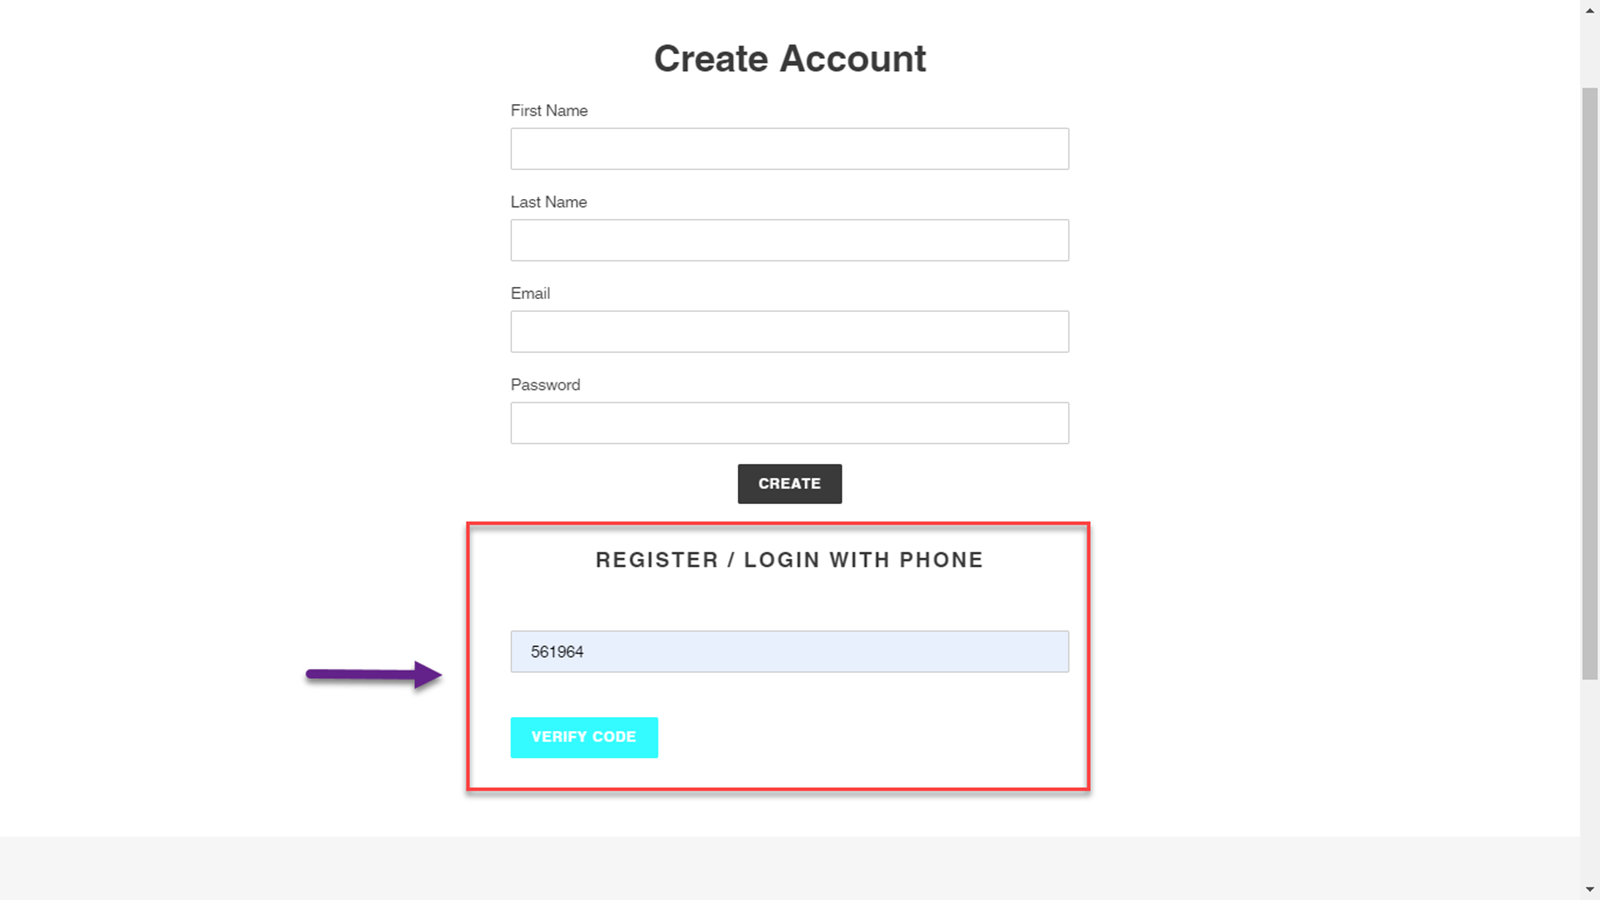 Customers will Provide the Passcode to Login